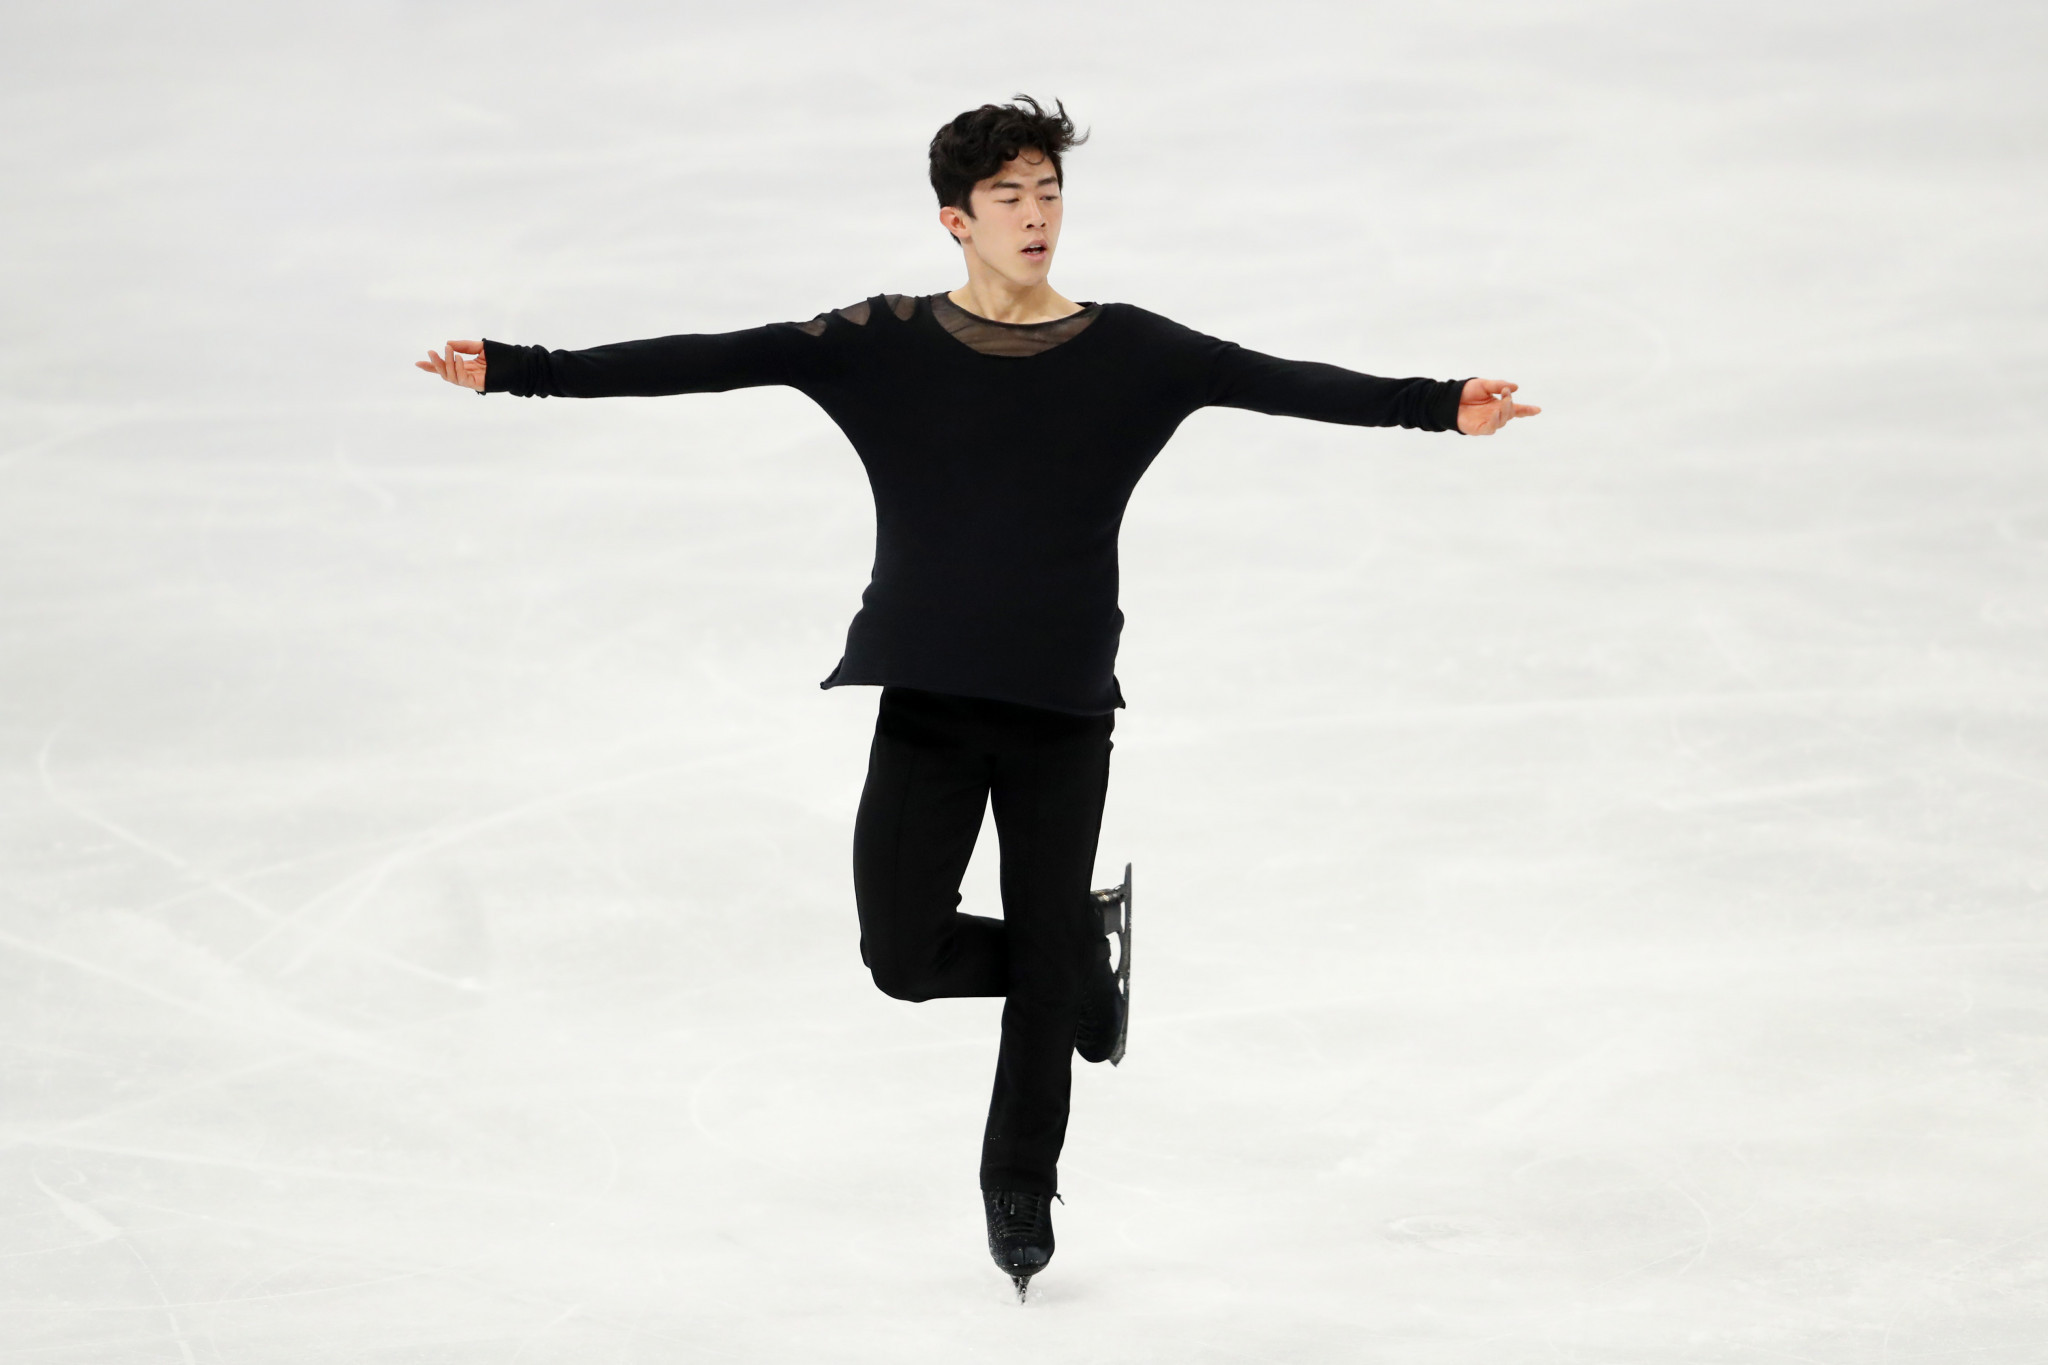 Nathan Chen won the men's singles title at the World Figure Skating Championships after an impressive display in the men's free skate ©Getty Images